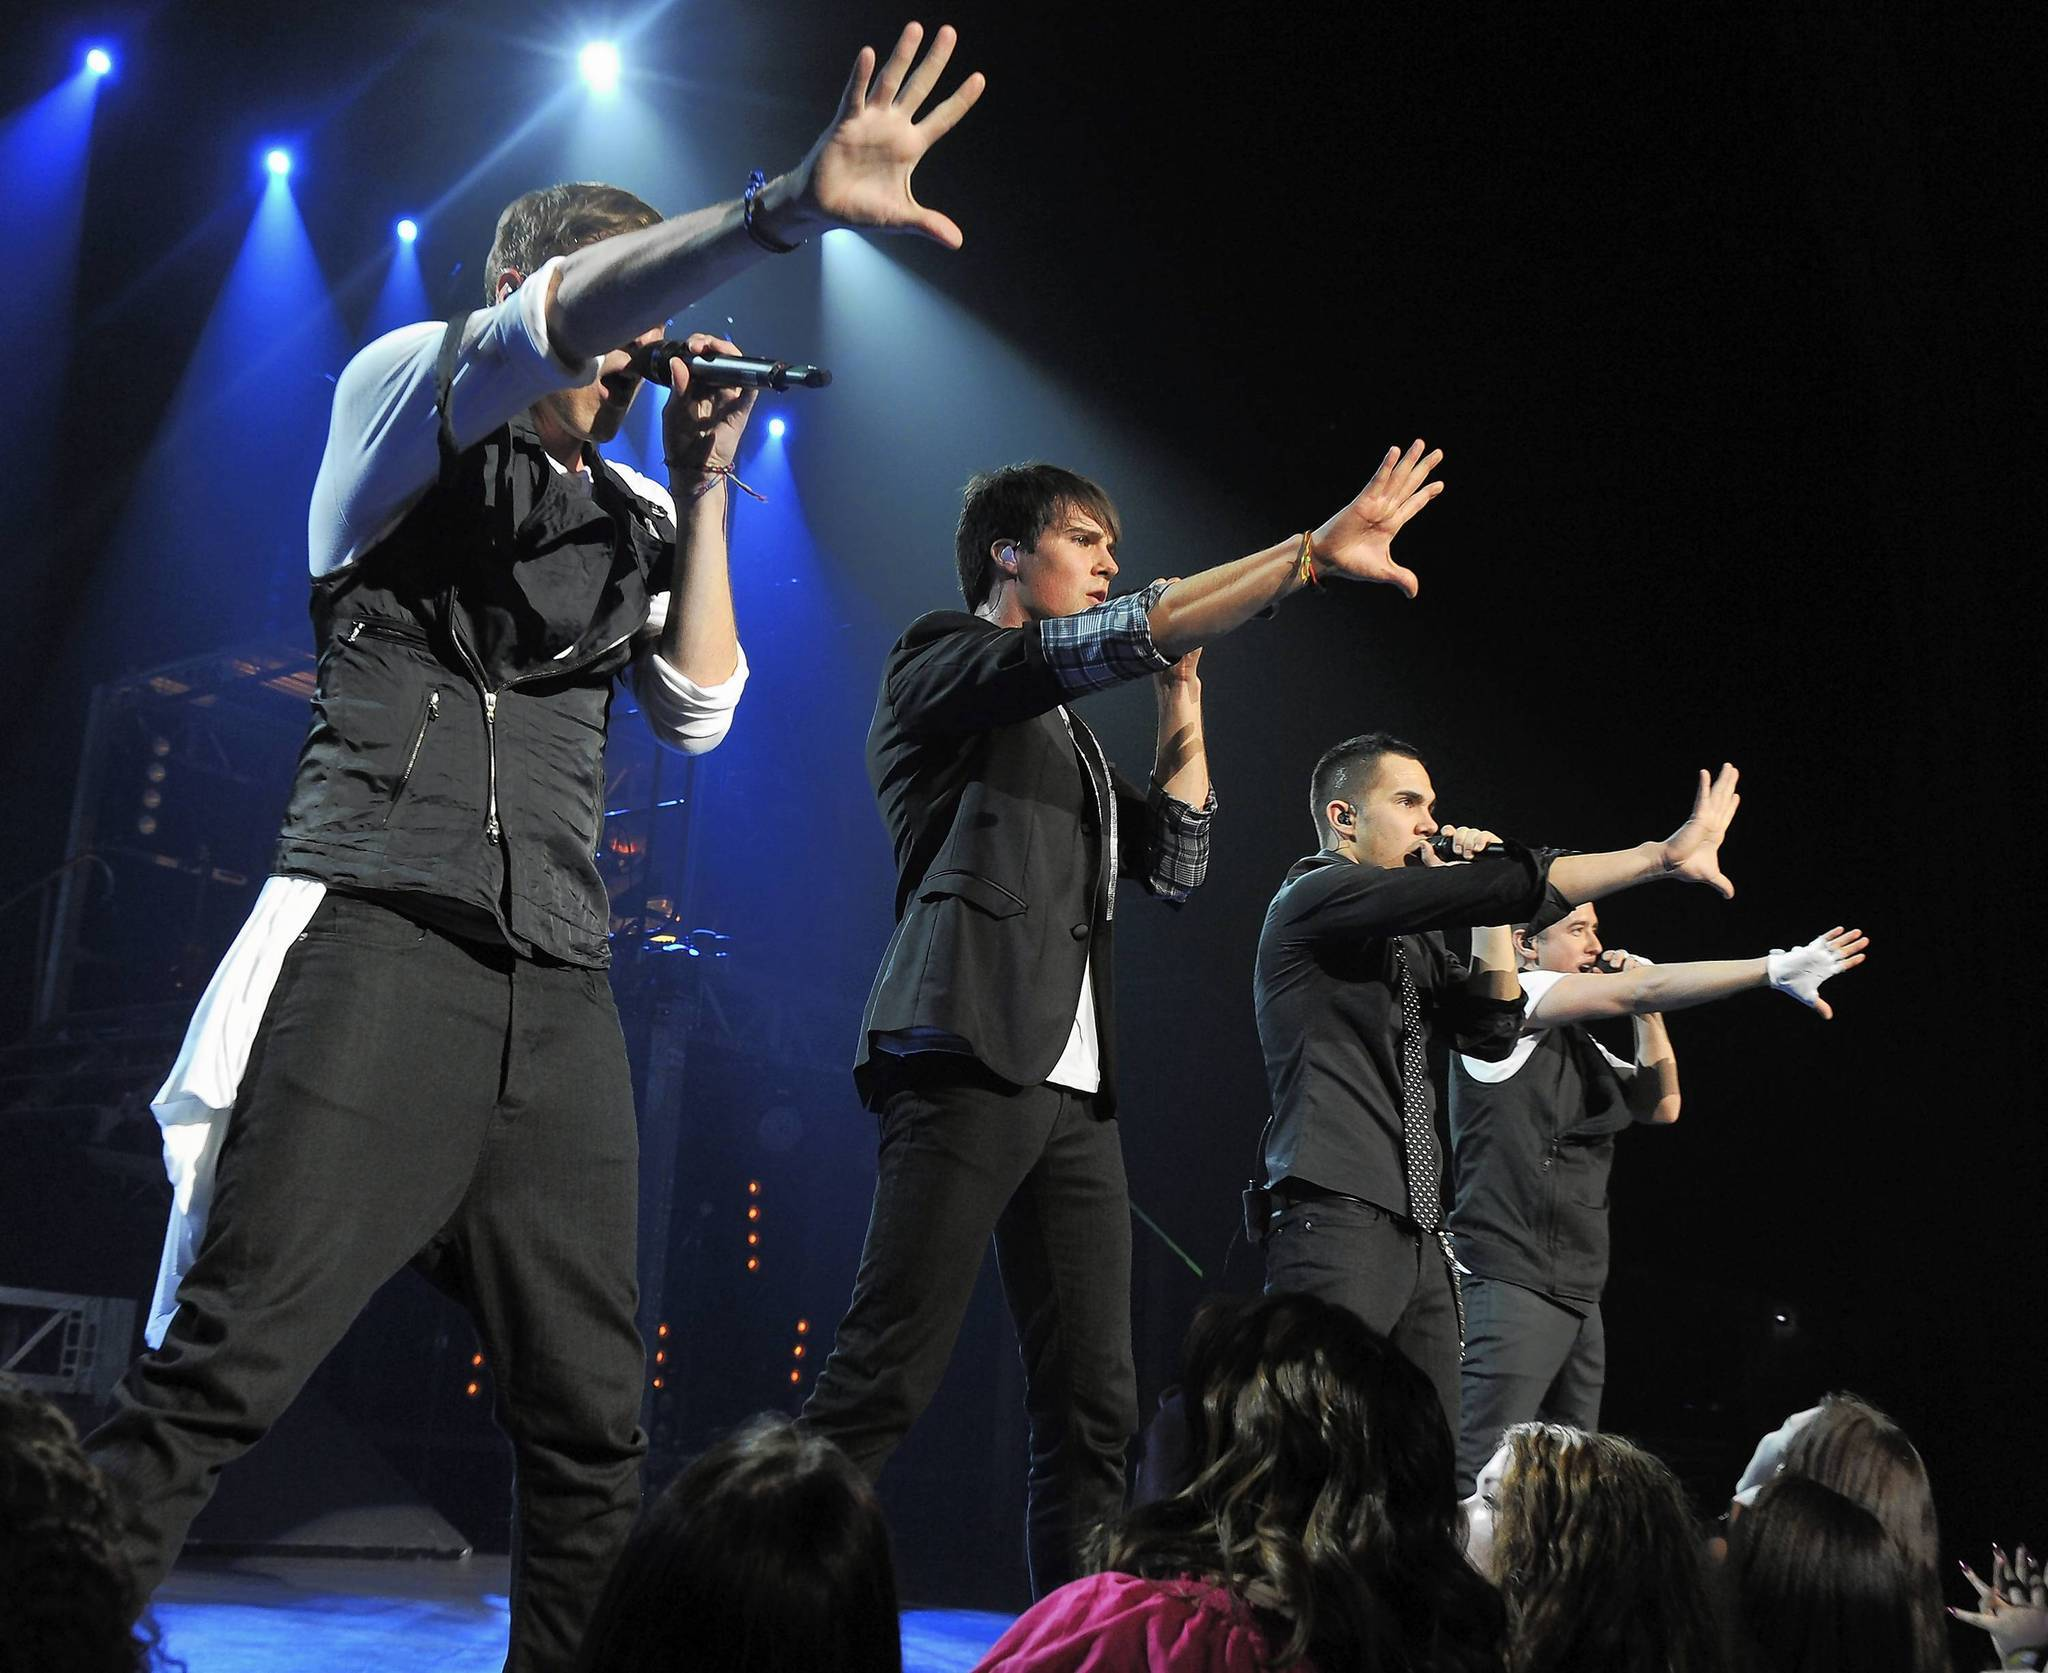 Big Time Rush (pictured at Radio City Music Hall in New York) will perform Aug. 28 at Amway Center in Orlando.